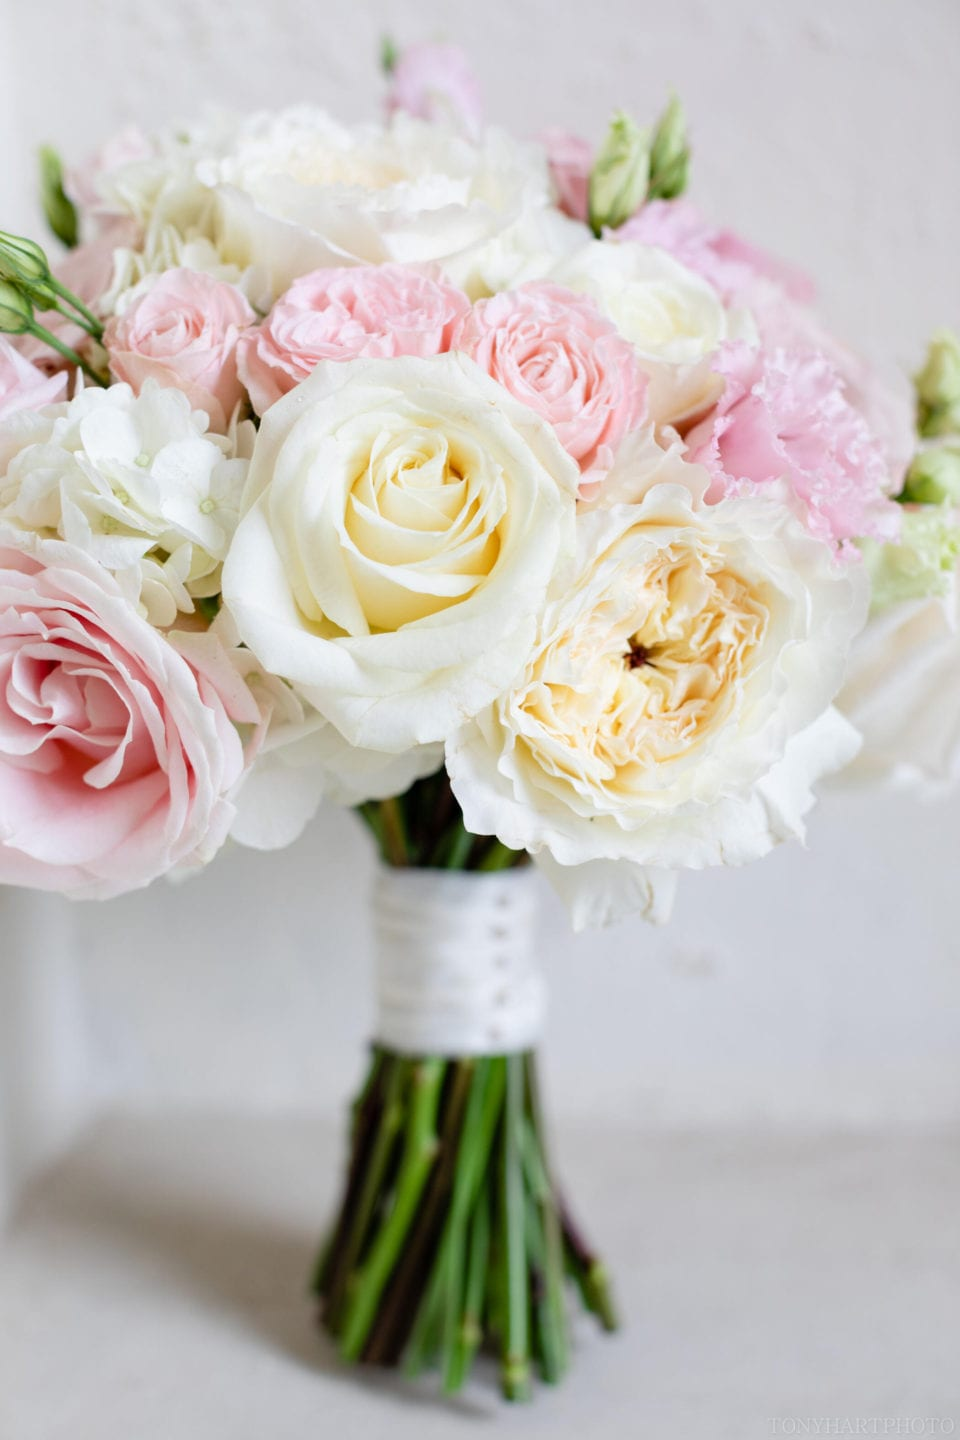 Flowers by the Fine Flowers Company